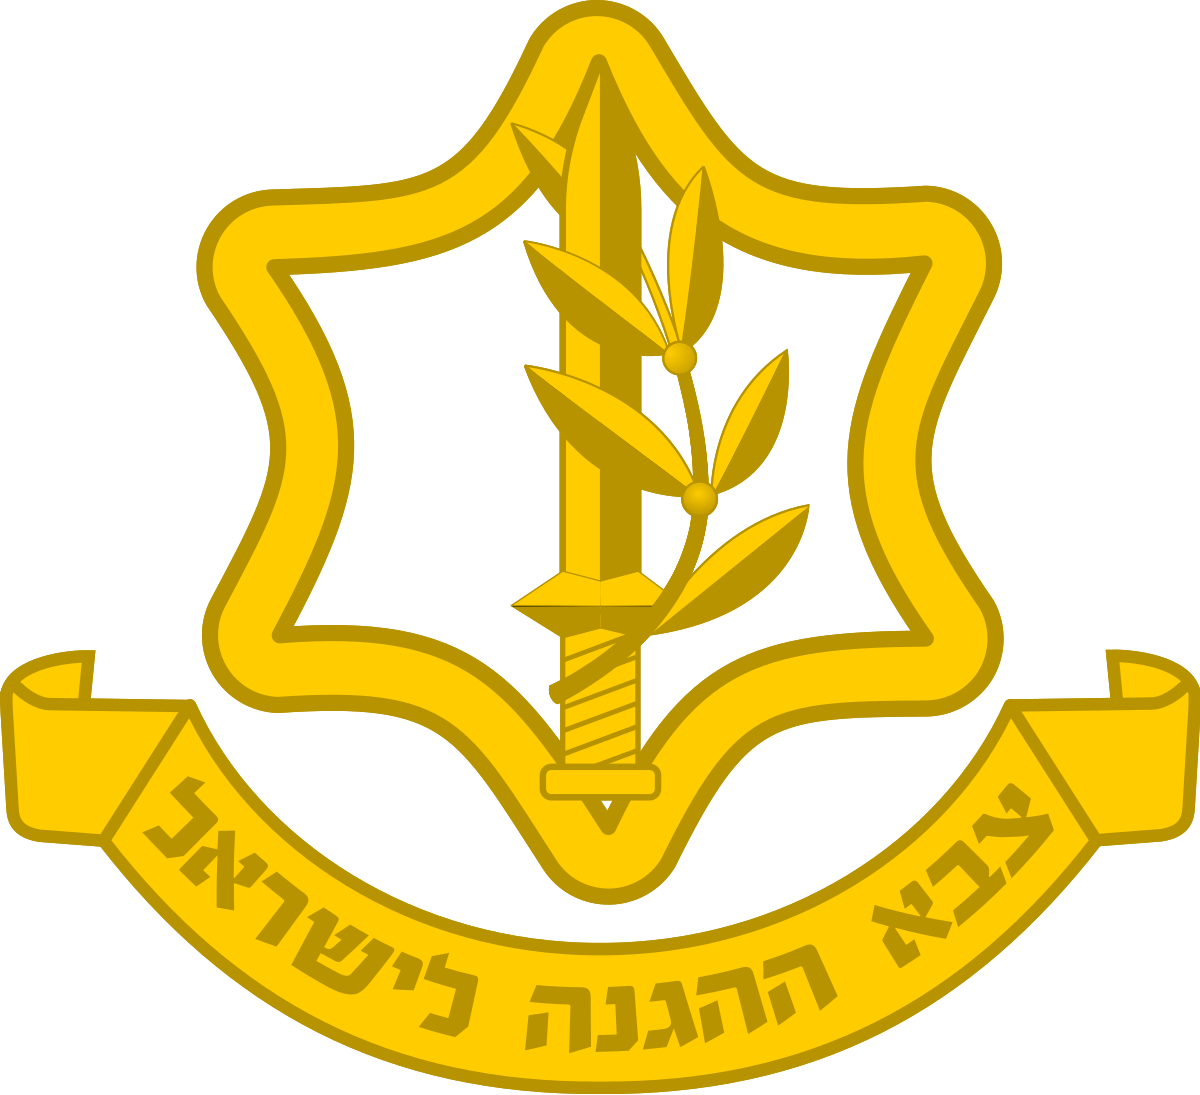 Brave clipart soldier israeli. Israel defense forces wikipedia